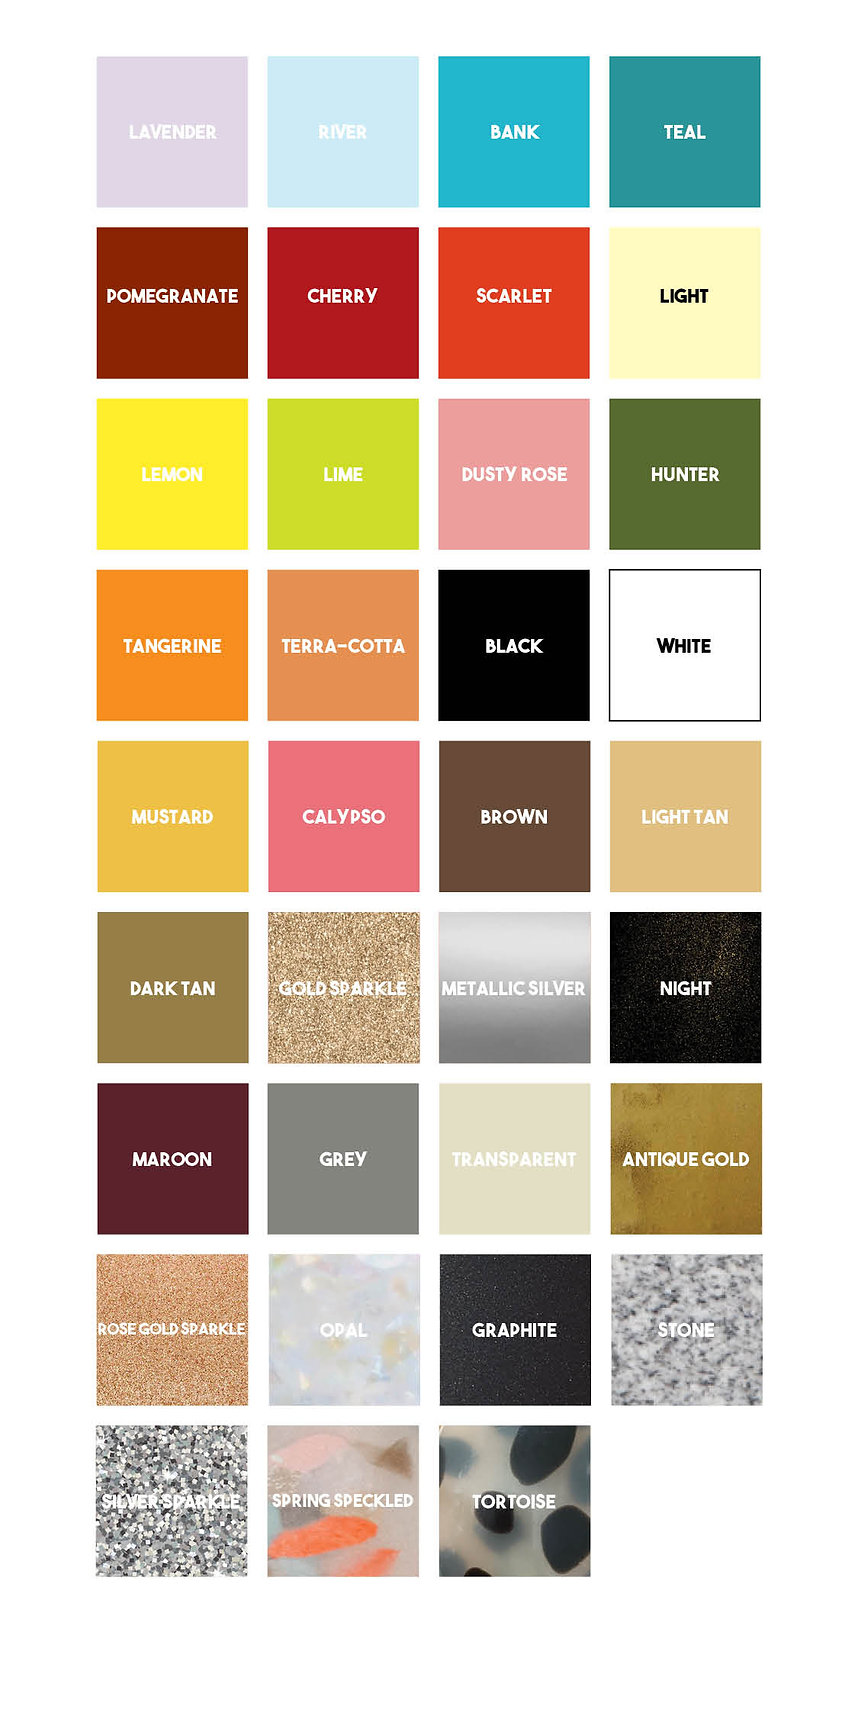 linden color listing 209.jpg